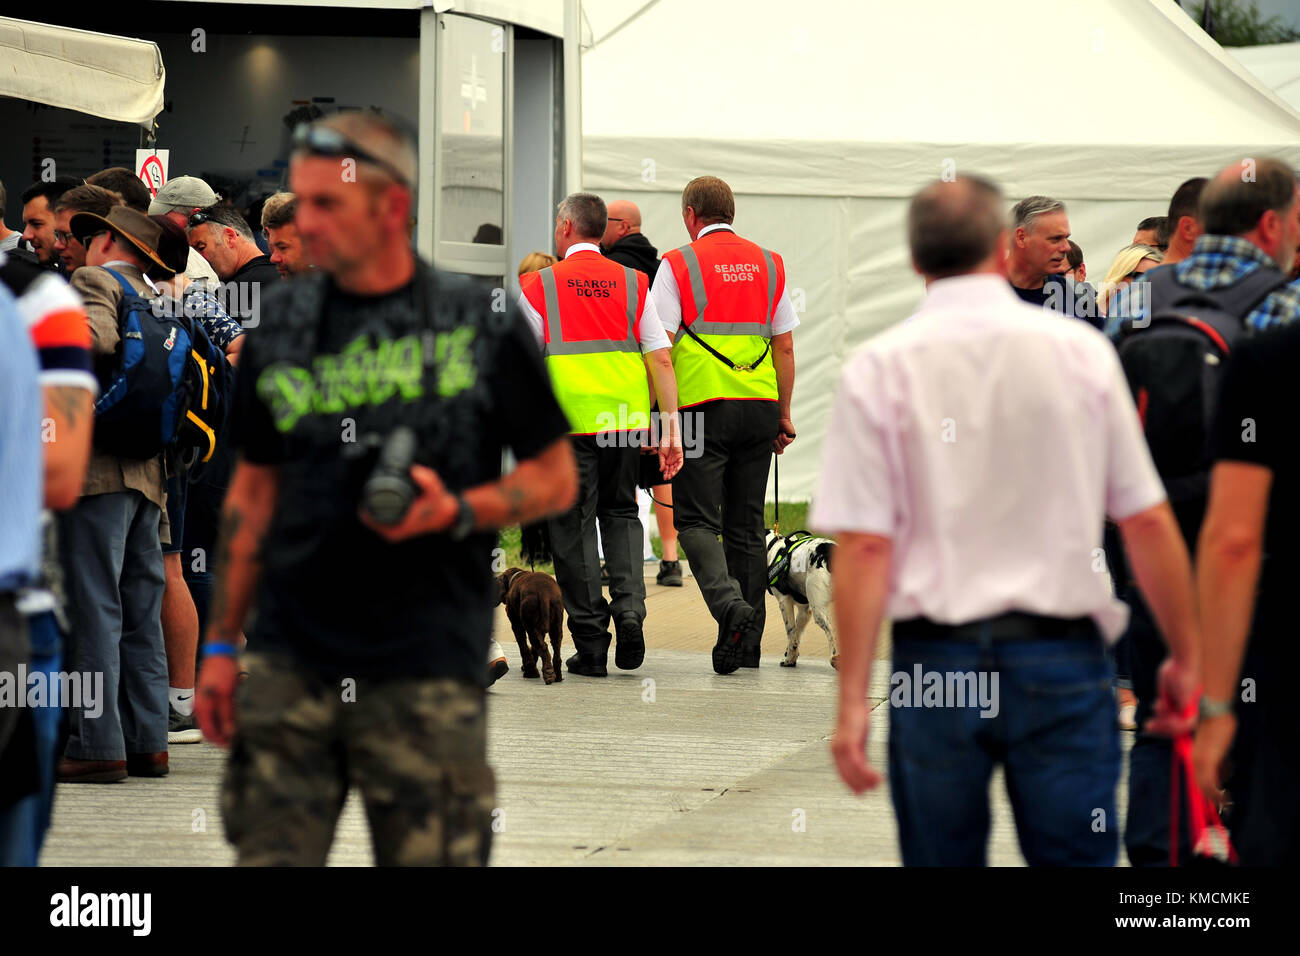 Sniffer dogs and their handlers at the Goodwood Festival of Speed. - Stock Image